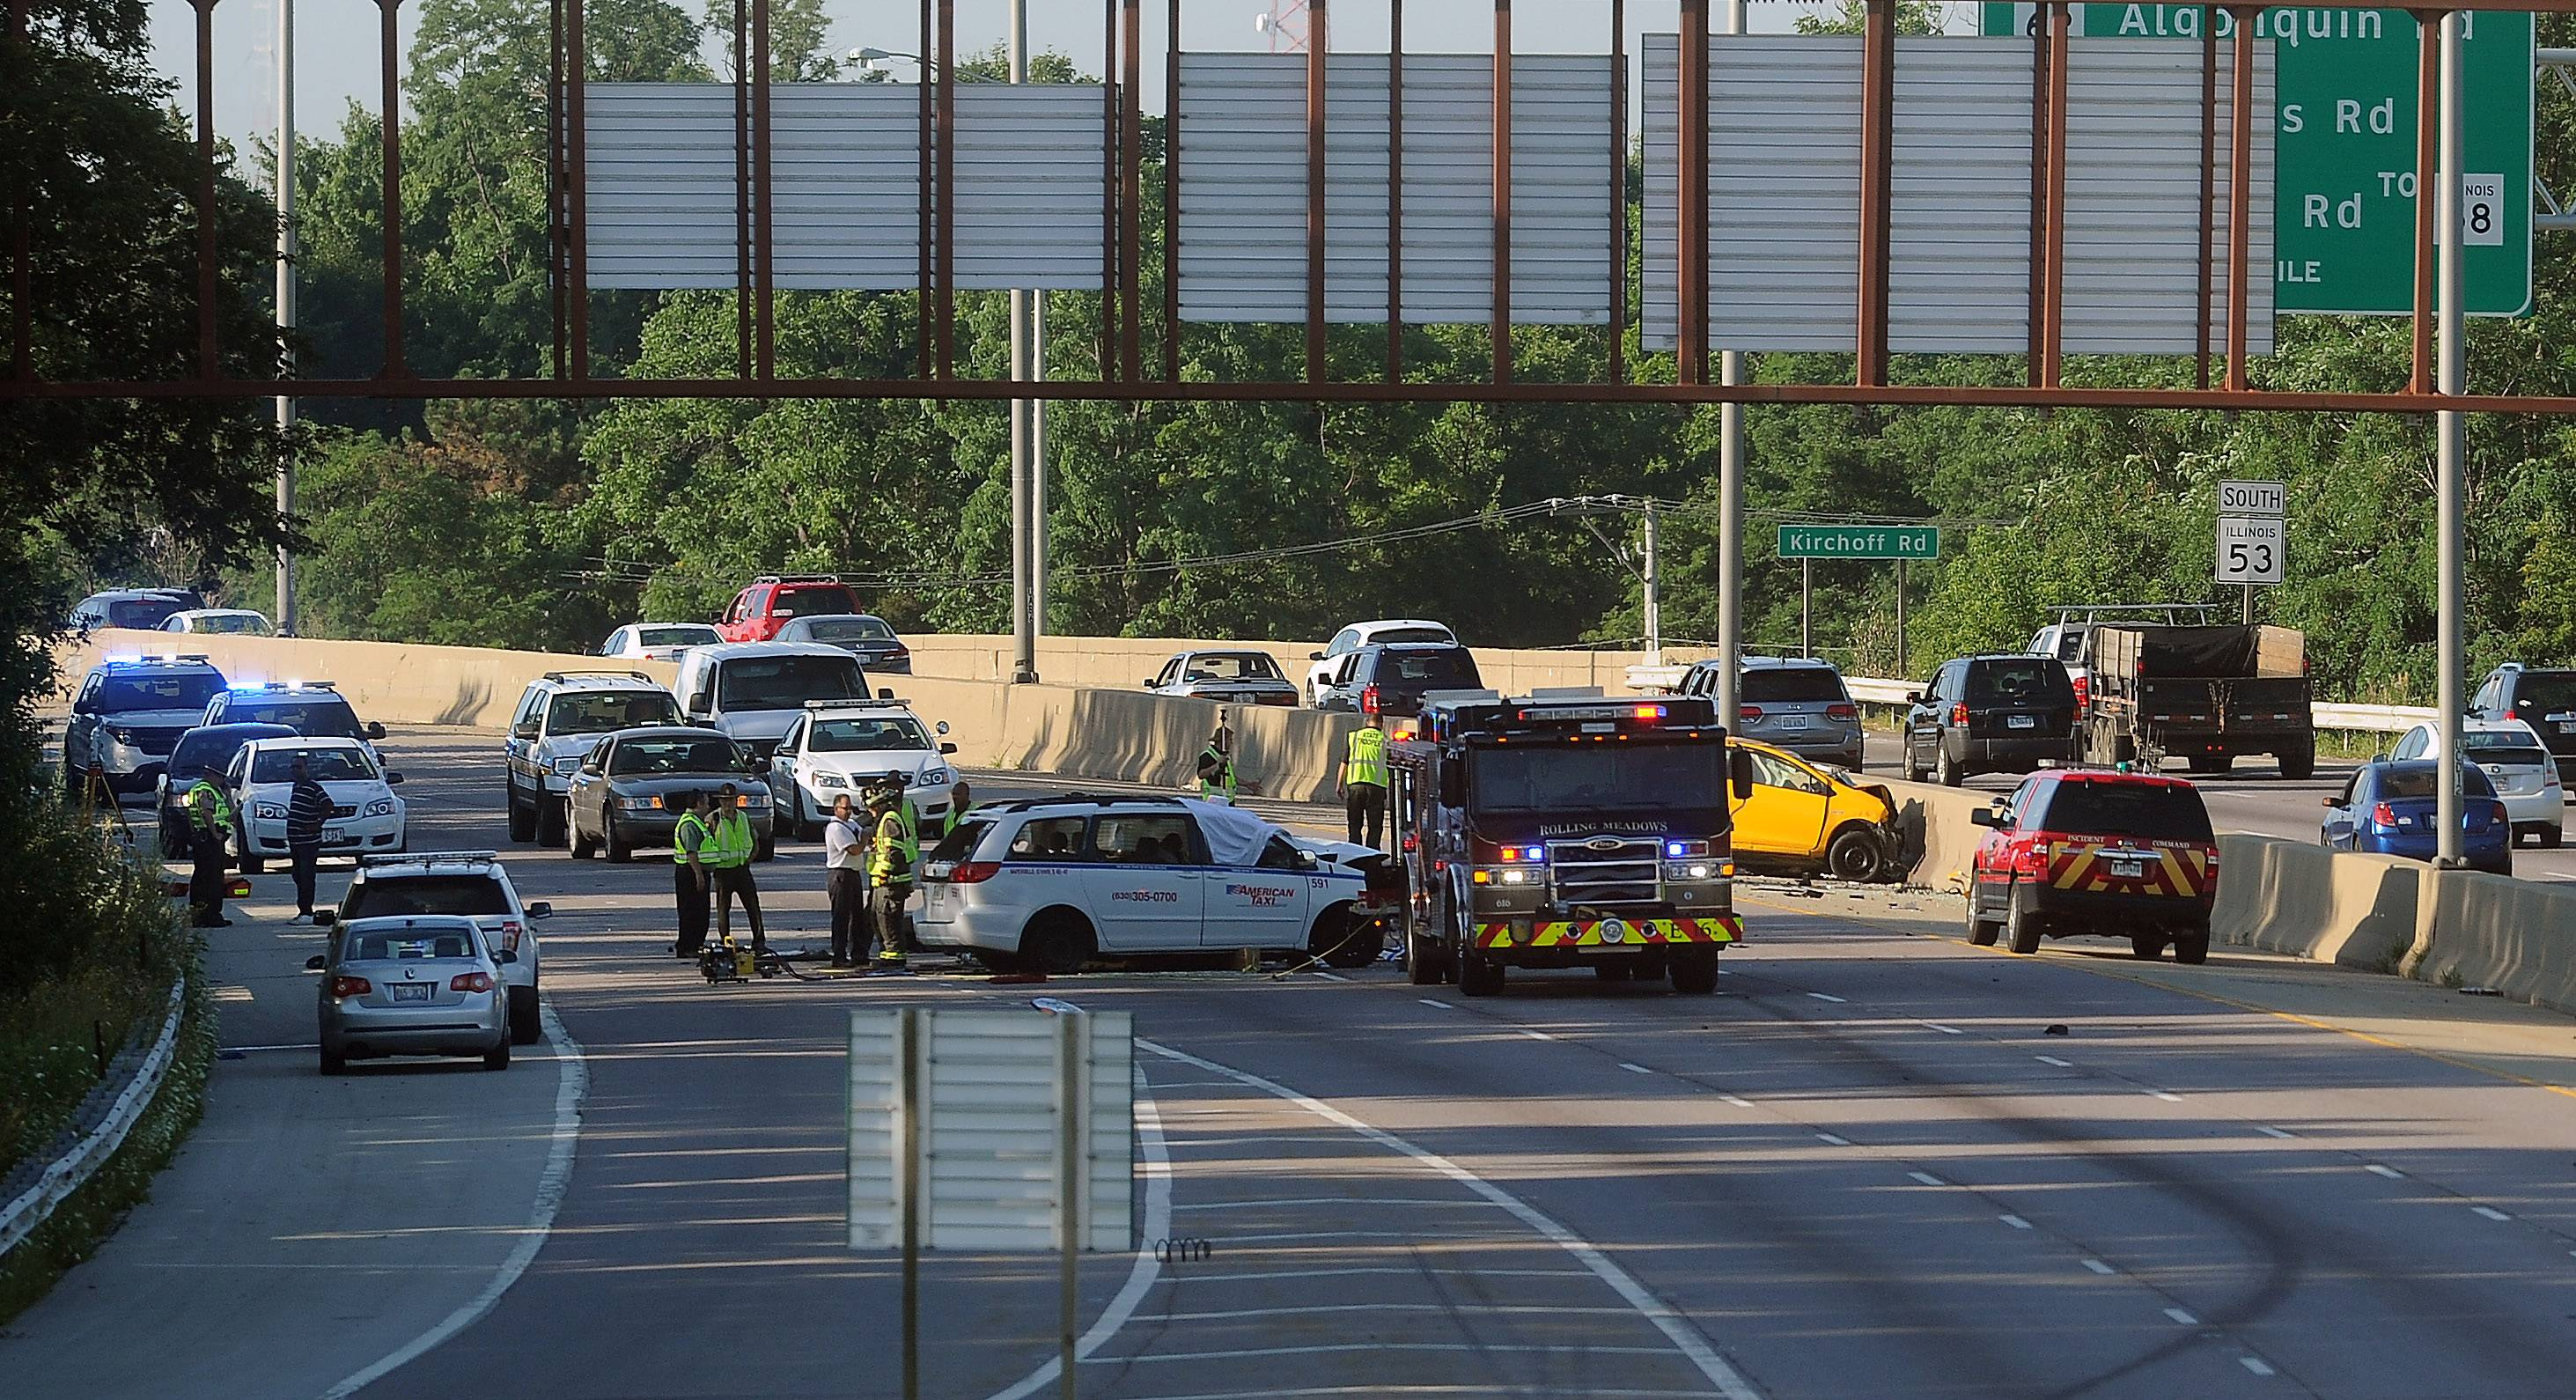 Dawn Patrol: What witnesses saw before Route 53 head-on collision